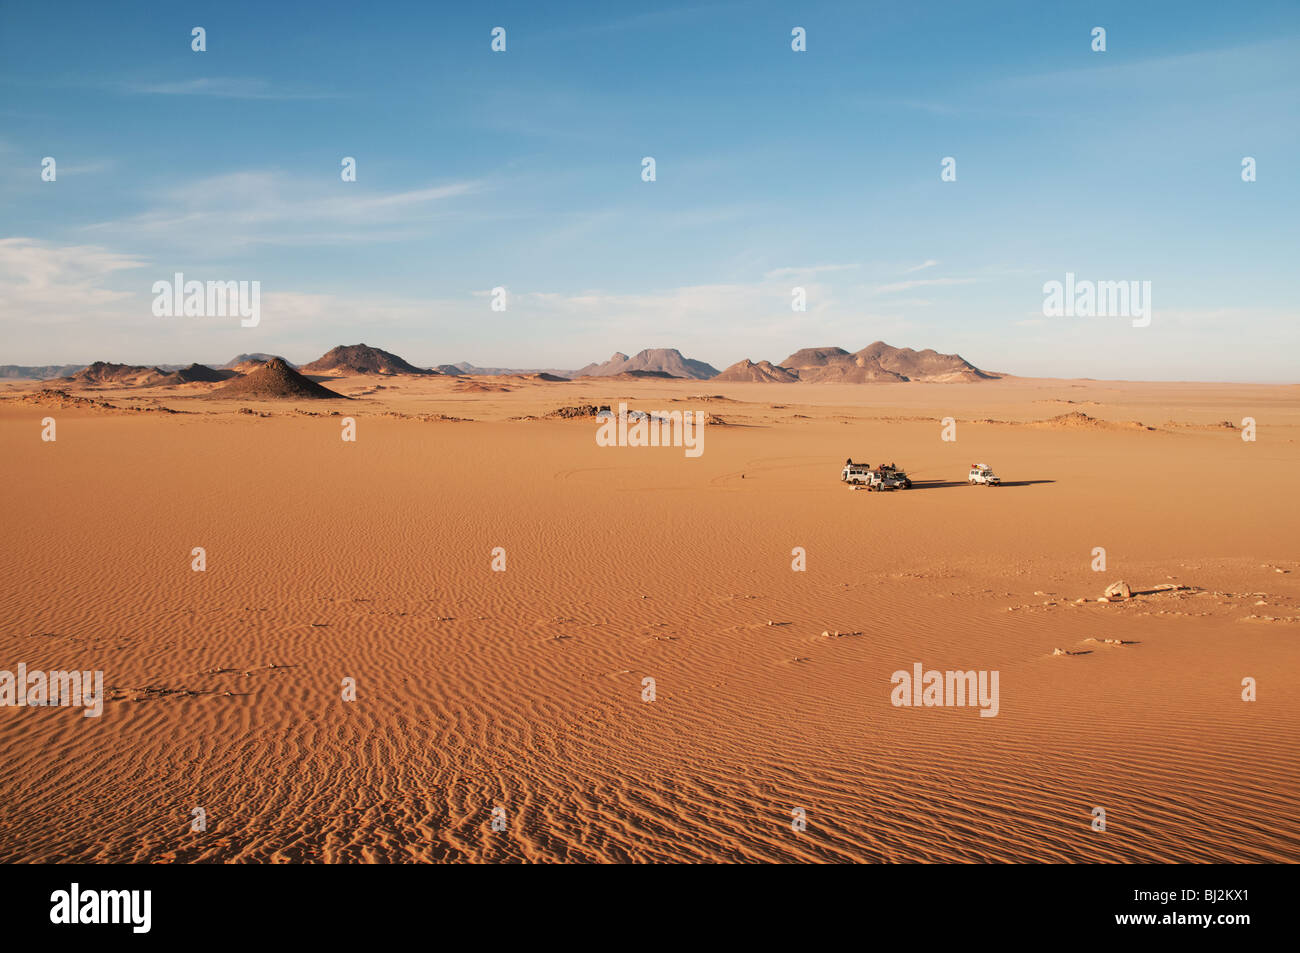 A jeep convoy making camp among the red sands of the Uweinat region of the Sahara Desert, Western Desert, Egypt - Stock Image